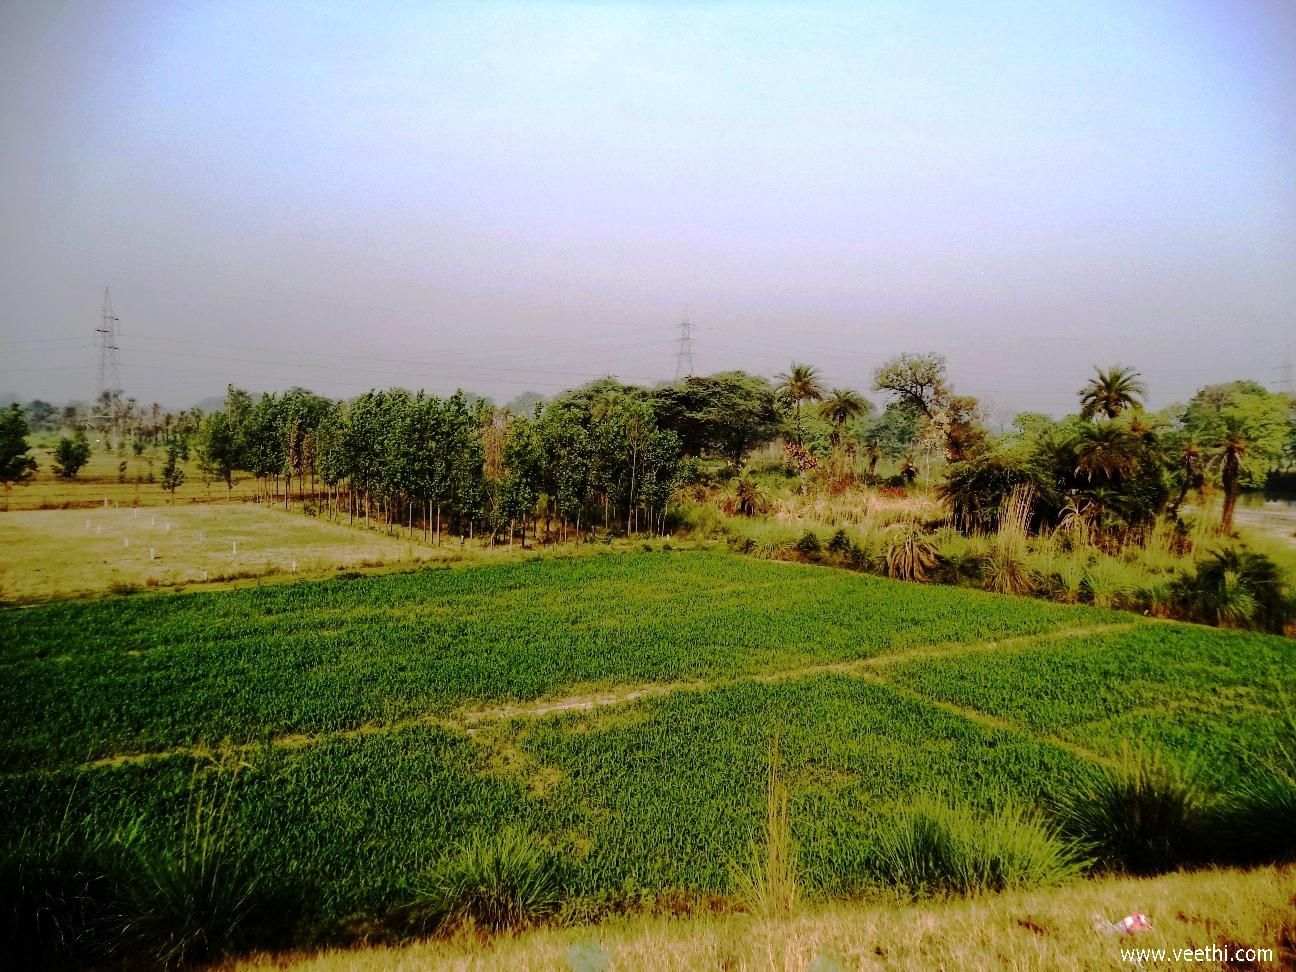 Maize Plantation, Khatauli